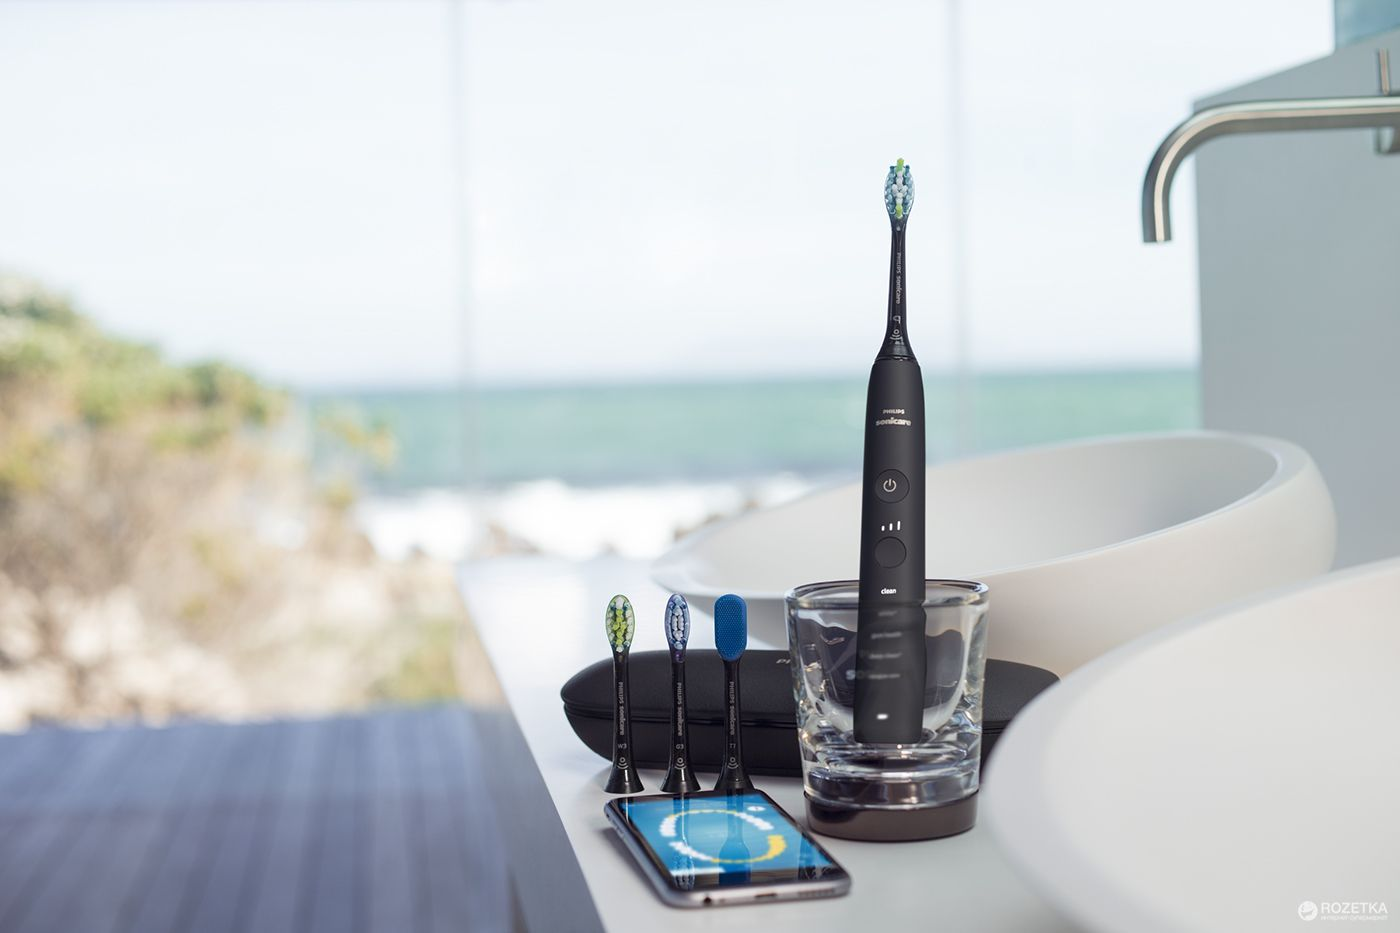 philips_sonicare_diamondclean_smart_hx992417_images_2317092329